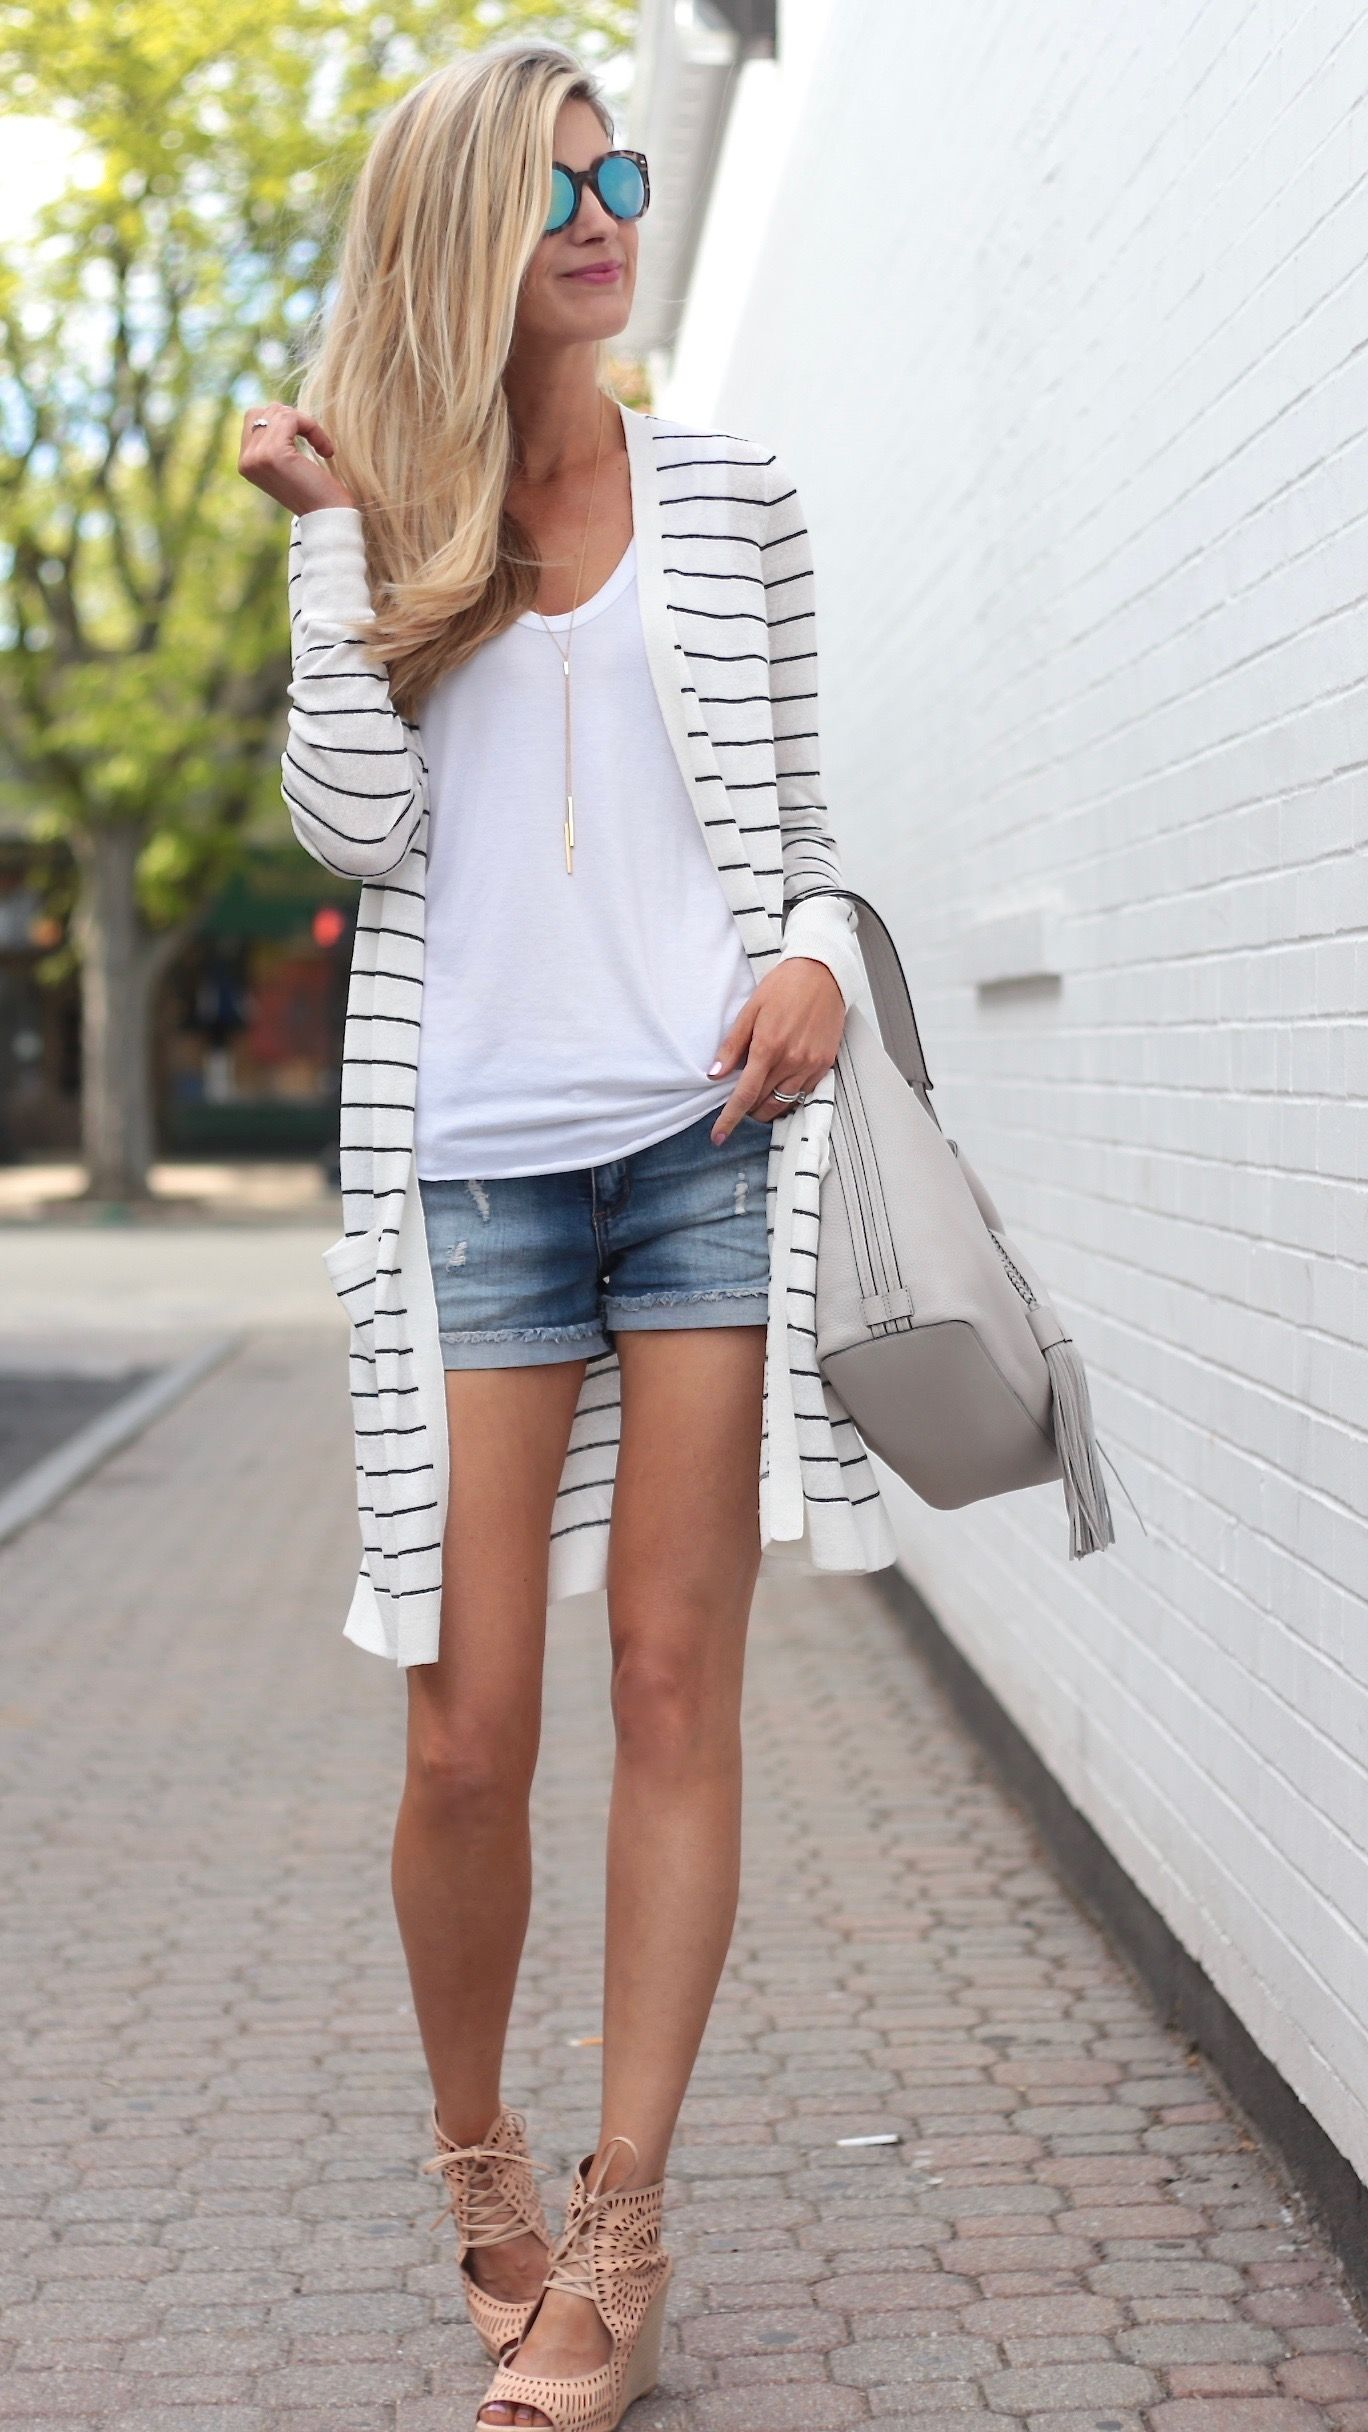 f6c998069 Summer Outfit Ideas with a Long Striped Cardigan Styled 3 Ways